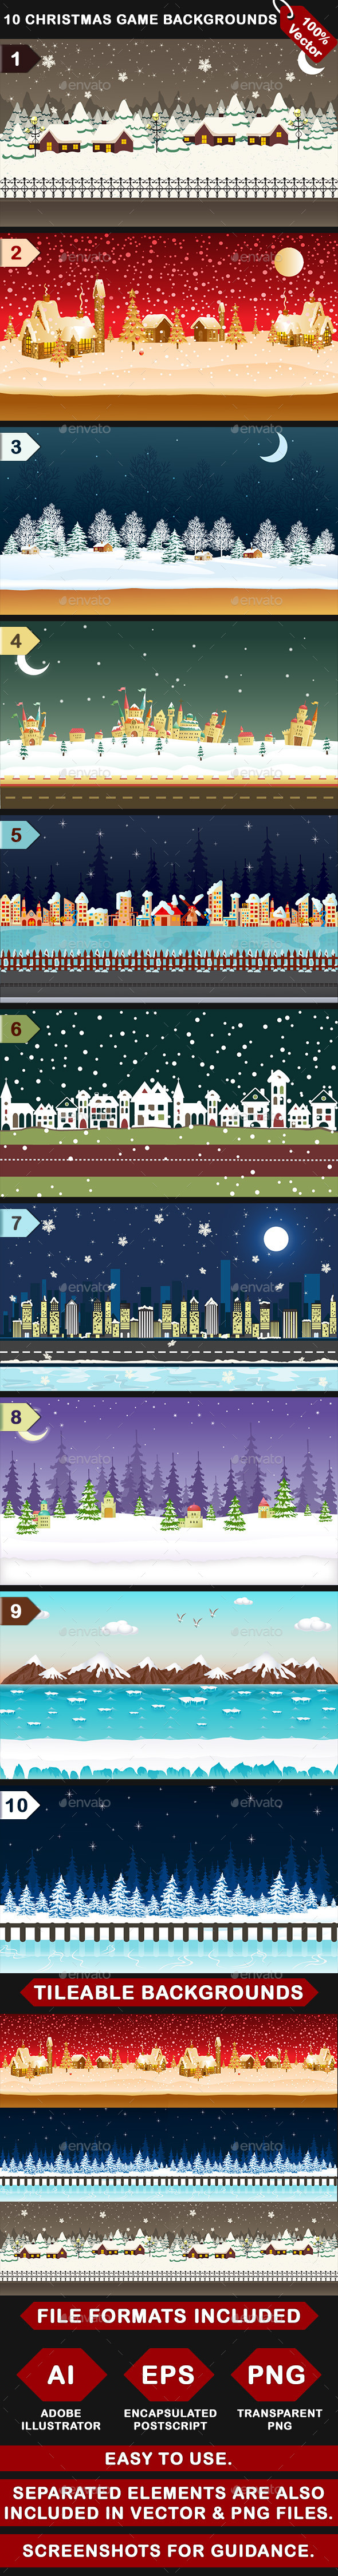 GraphicRiver 10 Vector Christmas Mobile Game Backgrounds 9719779